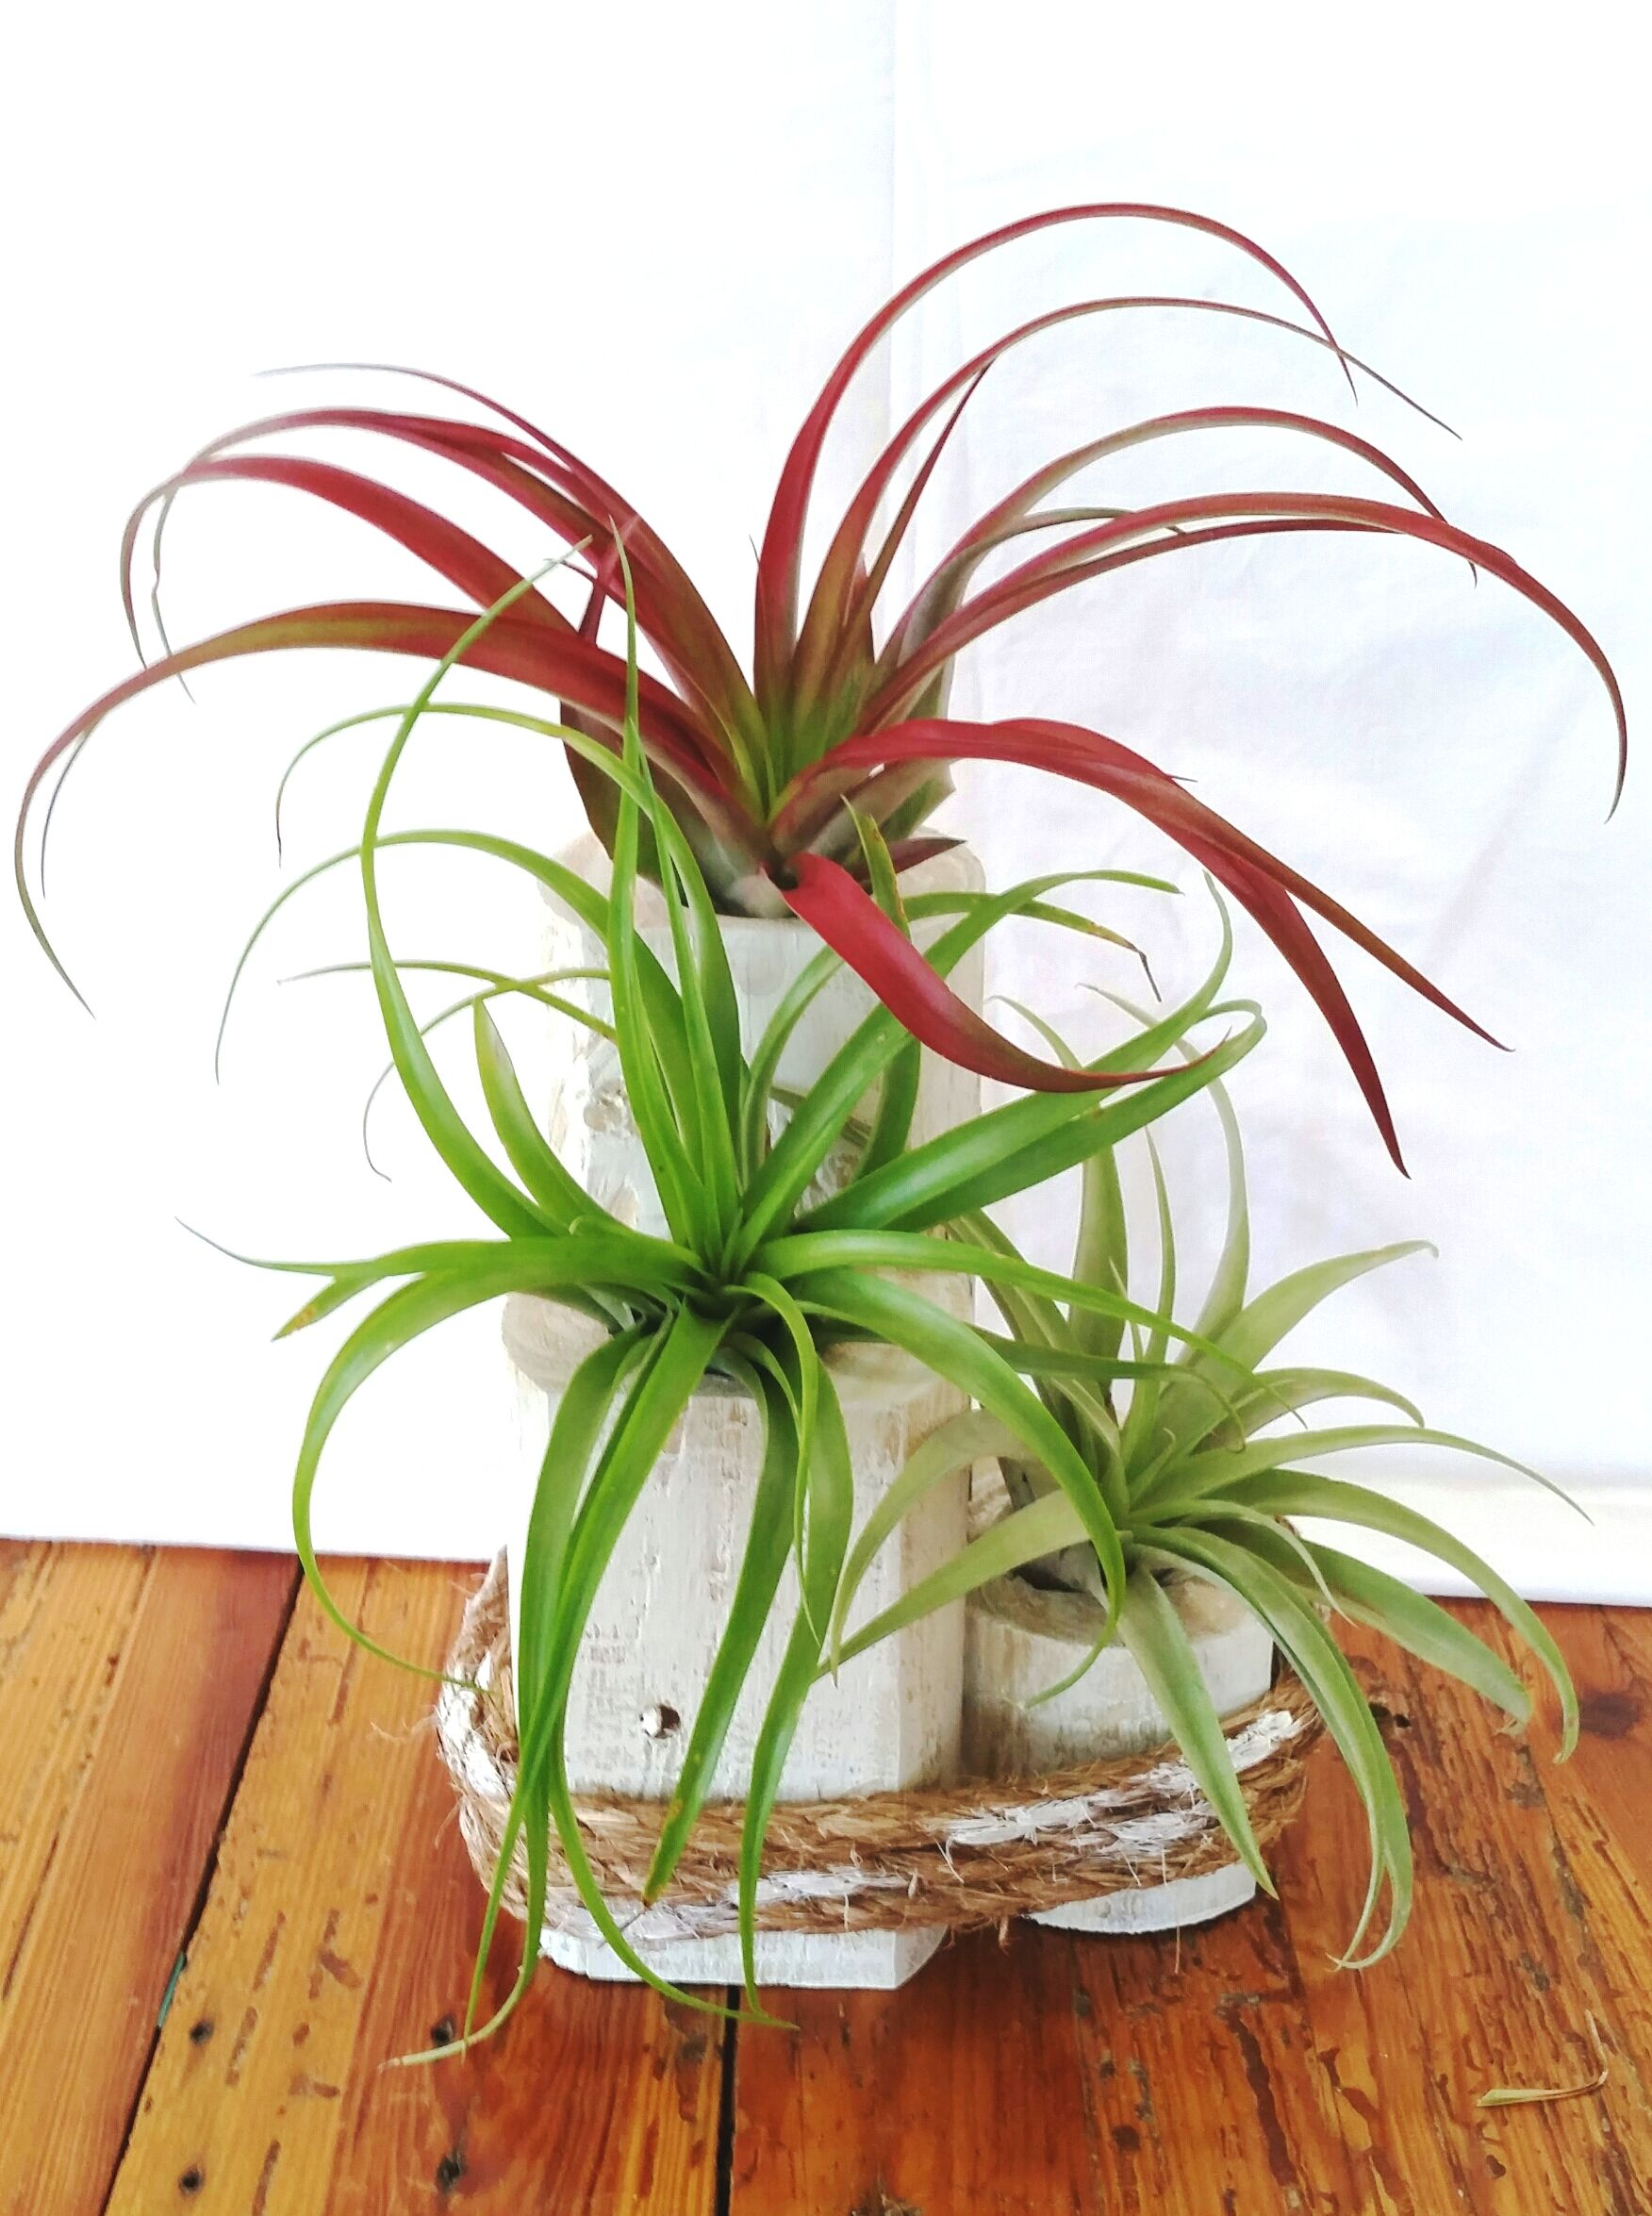 New Shabby Chic wooded planter with air plants Air plant